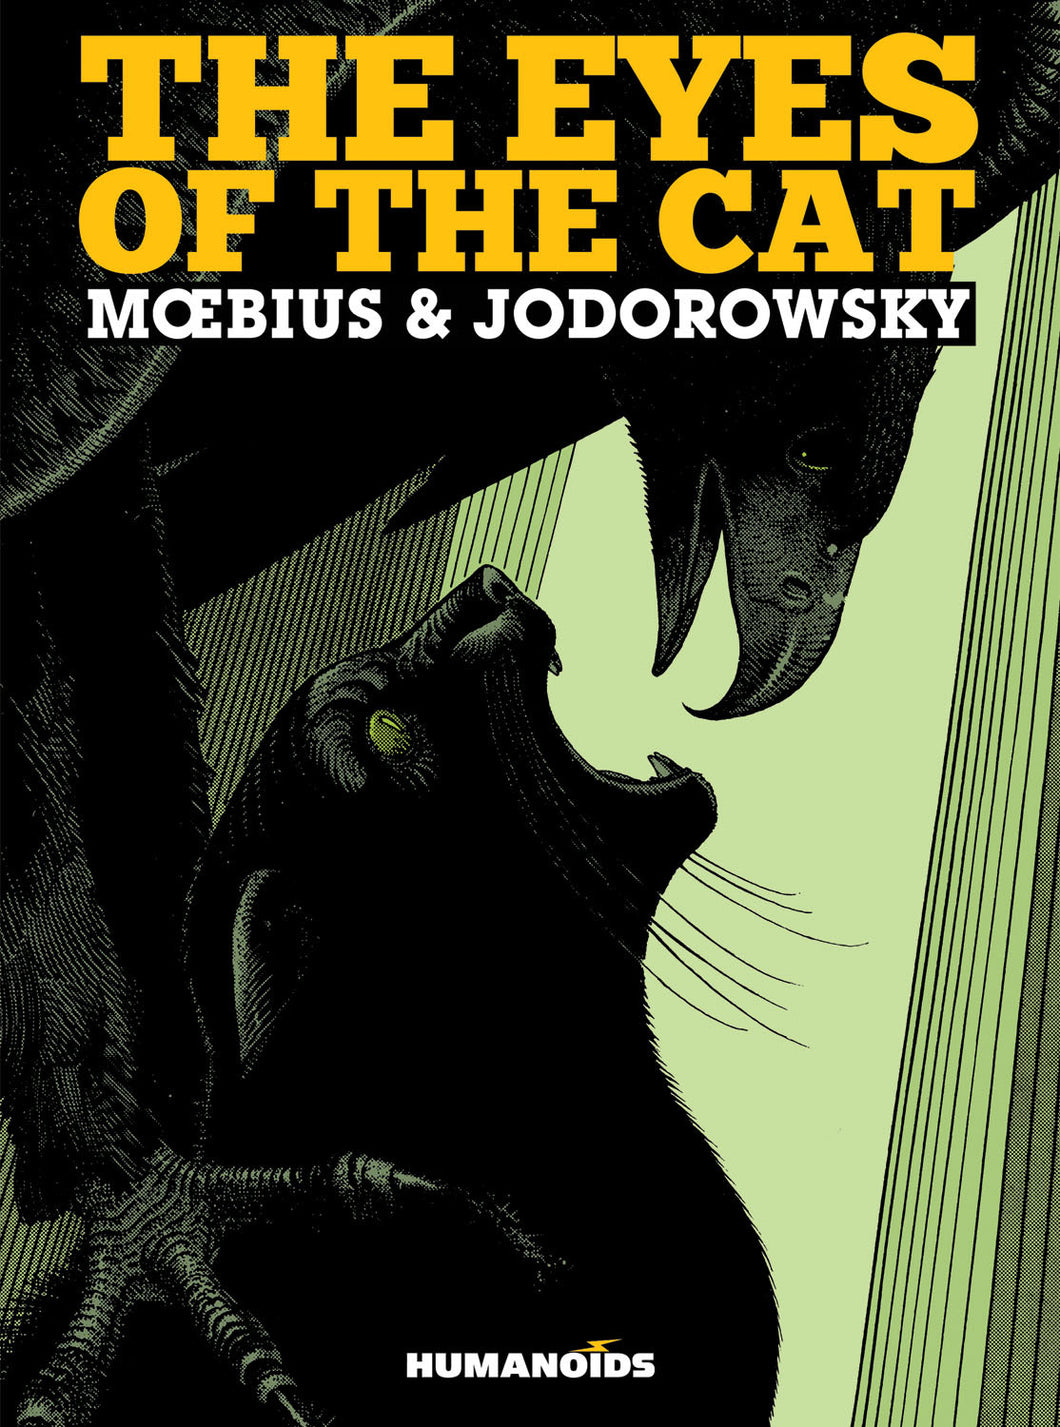 The Eyes of the Cat by Alejandro Jodorowsky and Moebius